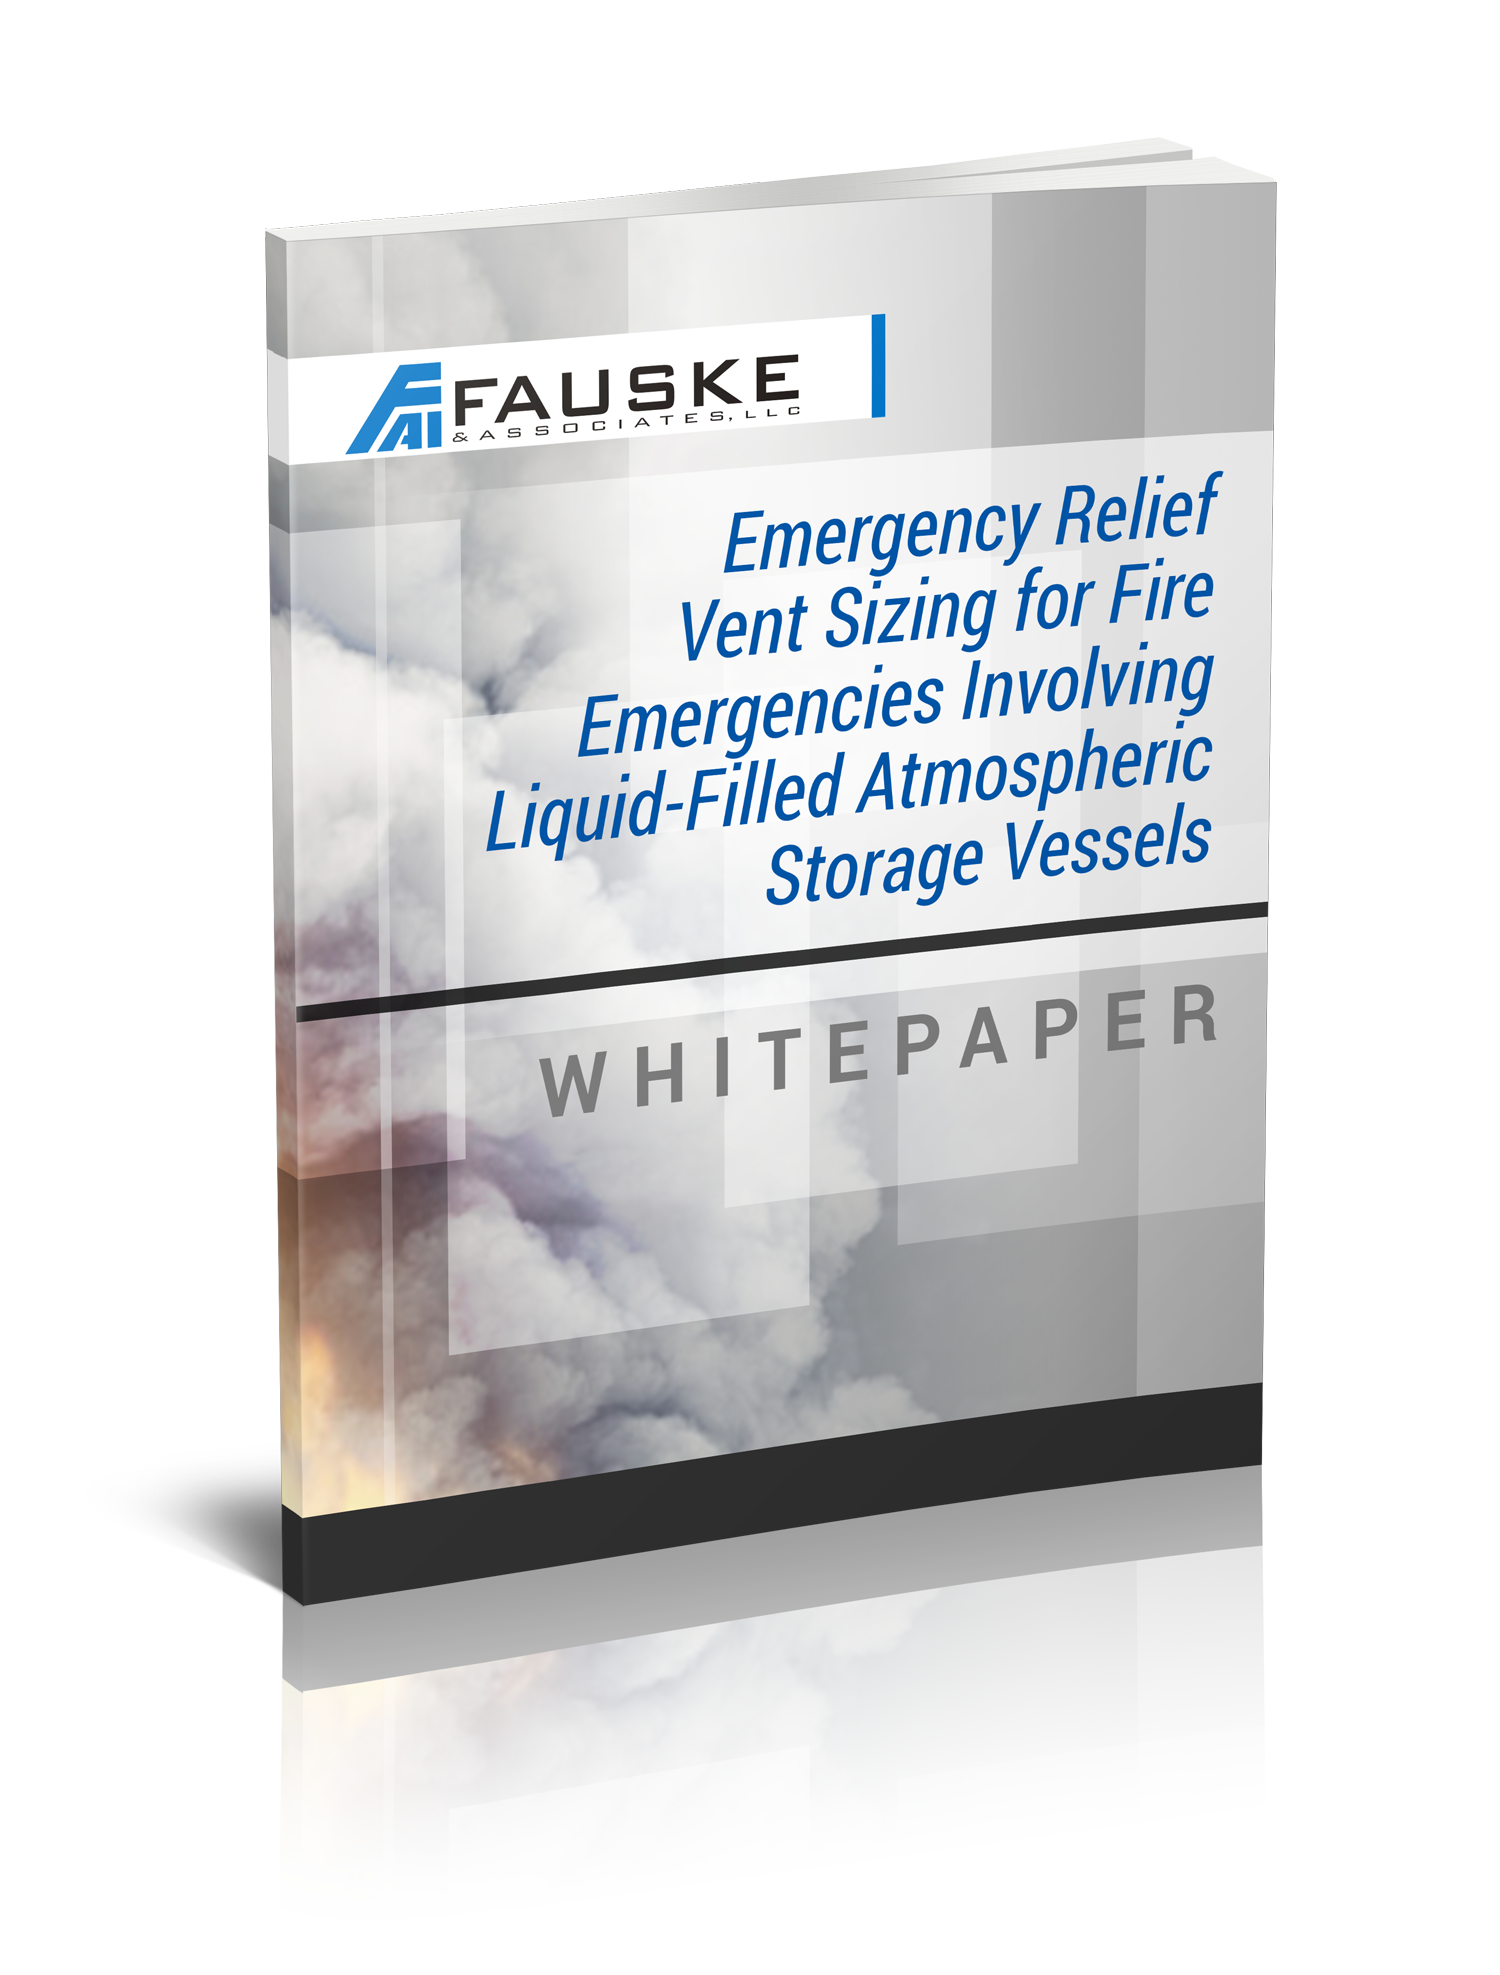 fauske-wp-emergency-relief-vent-sizing.png